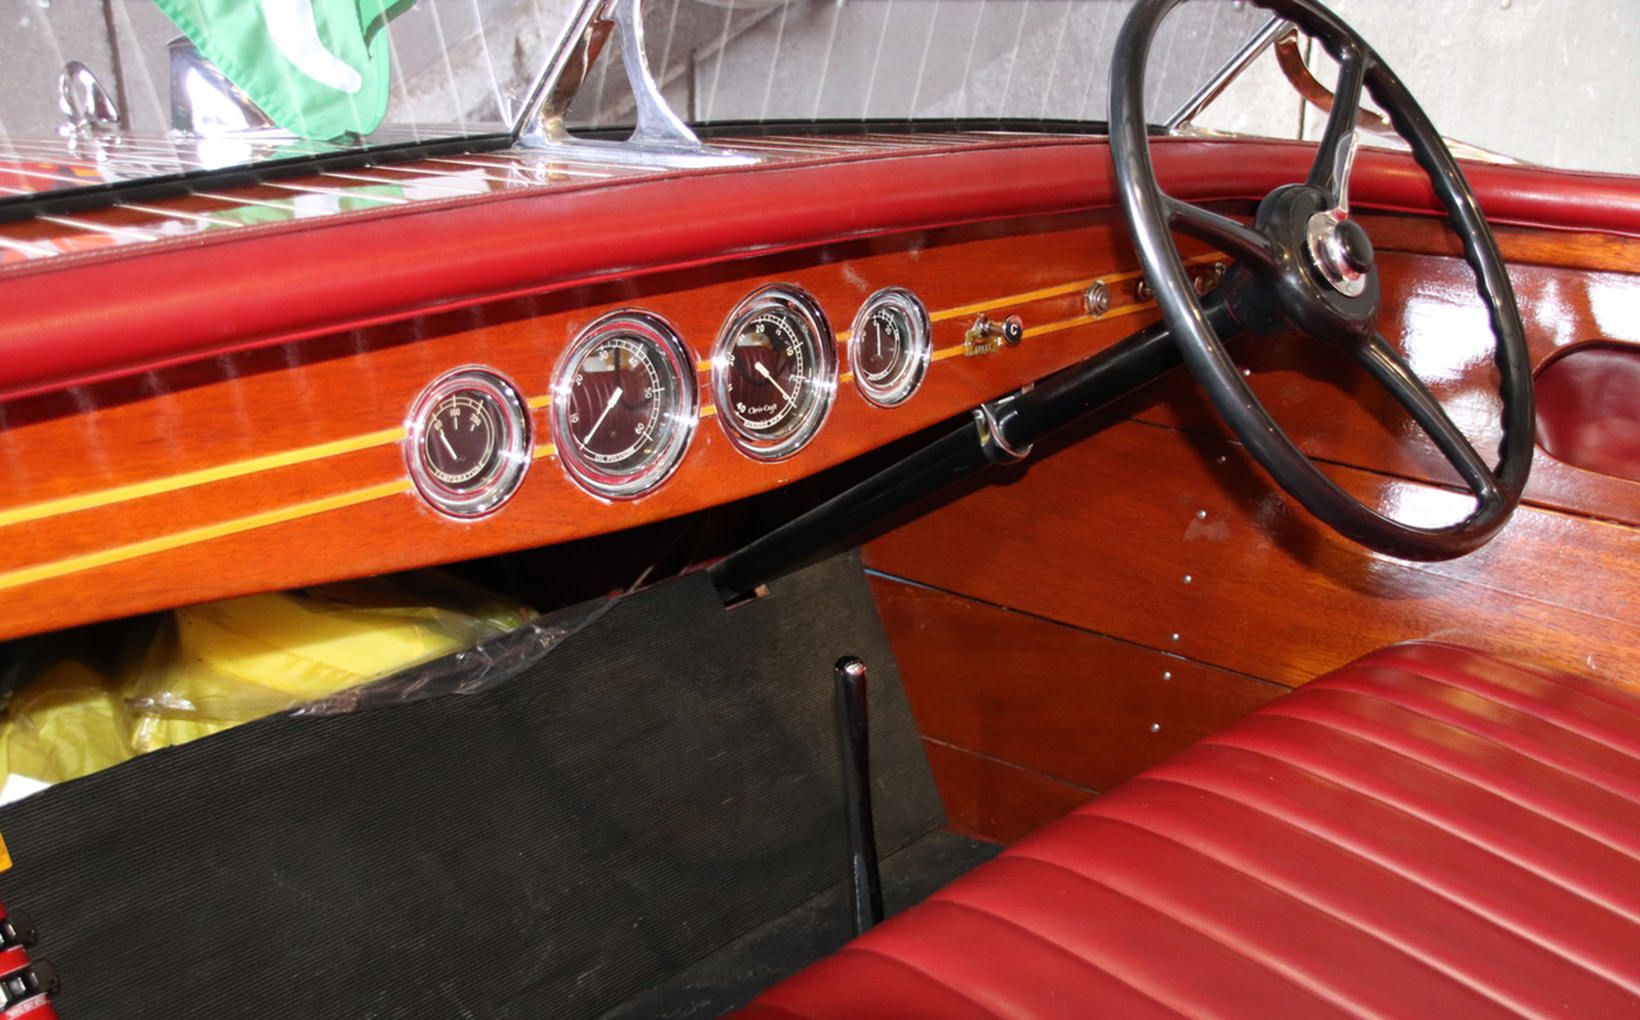 Rare Chris-Craft wooden powerboat at Shannons Sydney Sale - Shannons